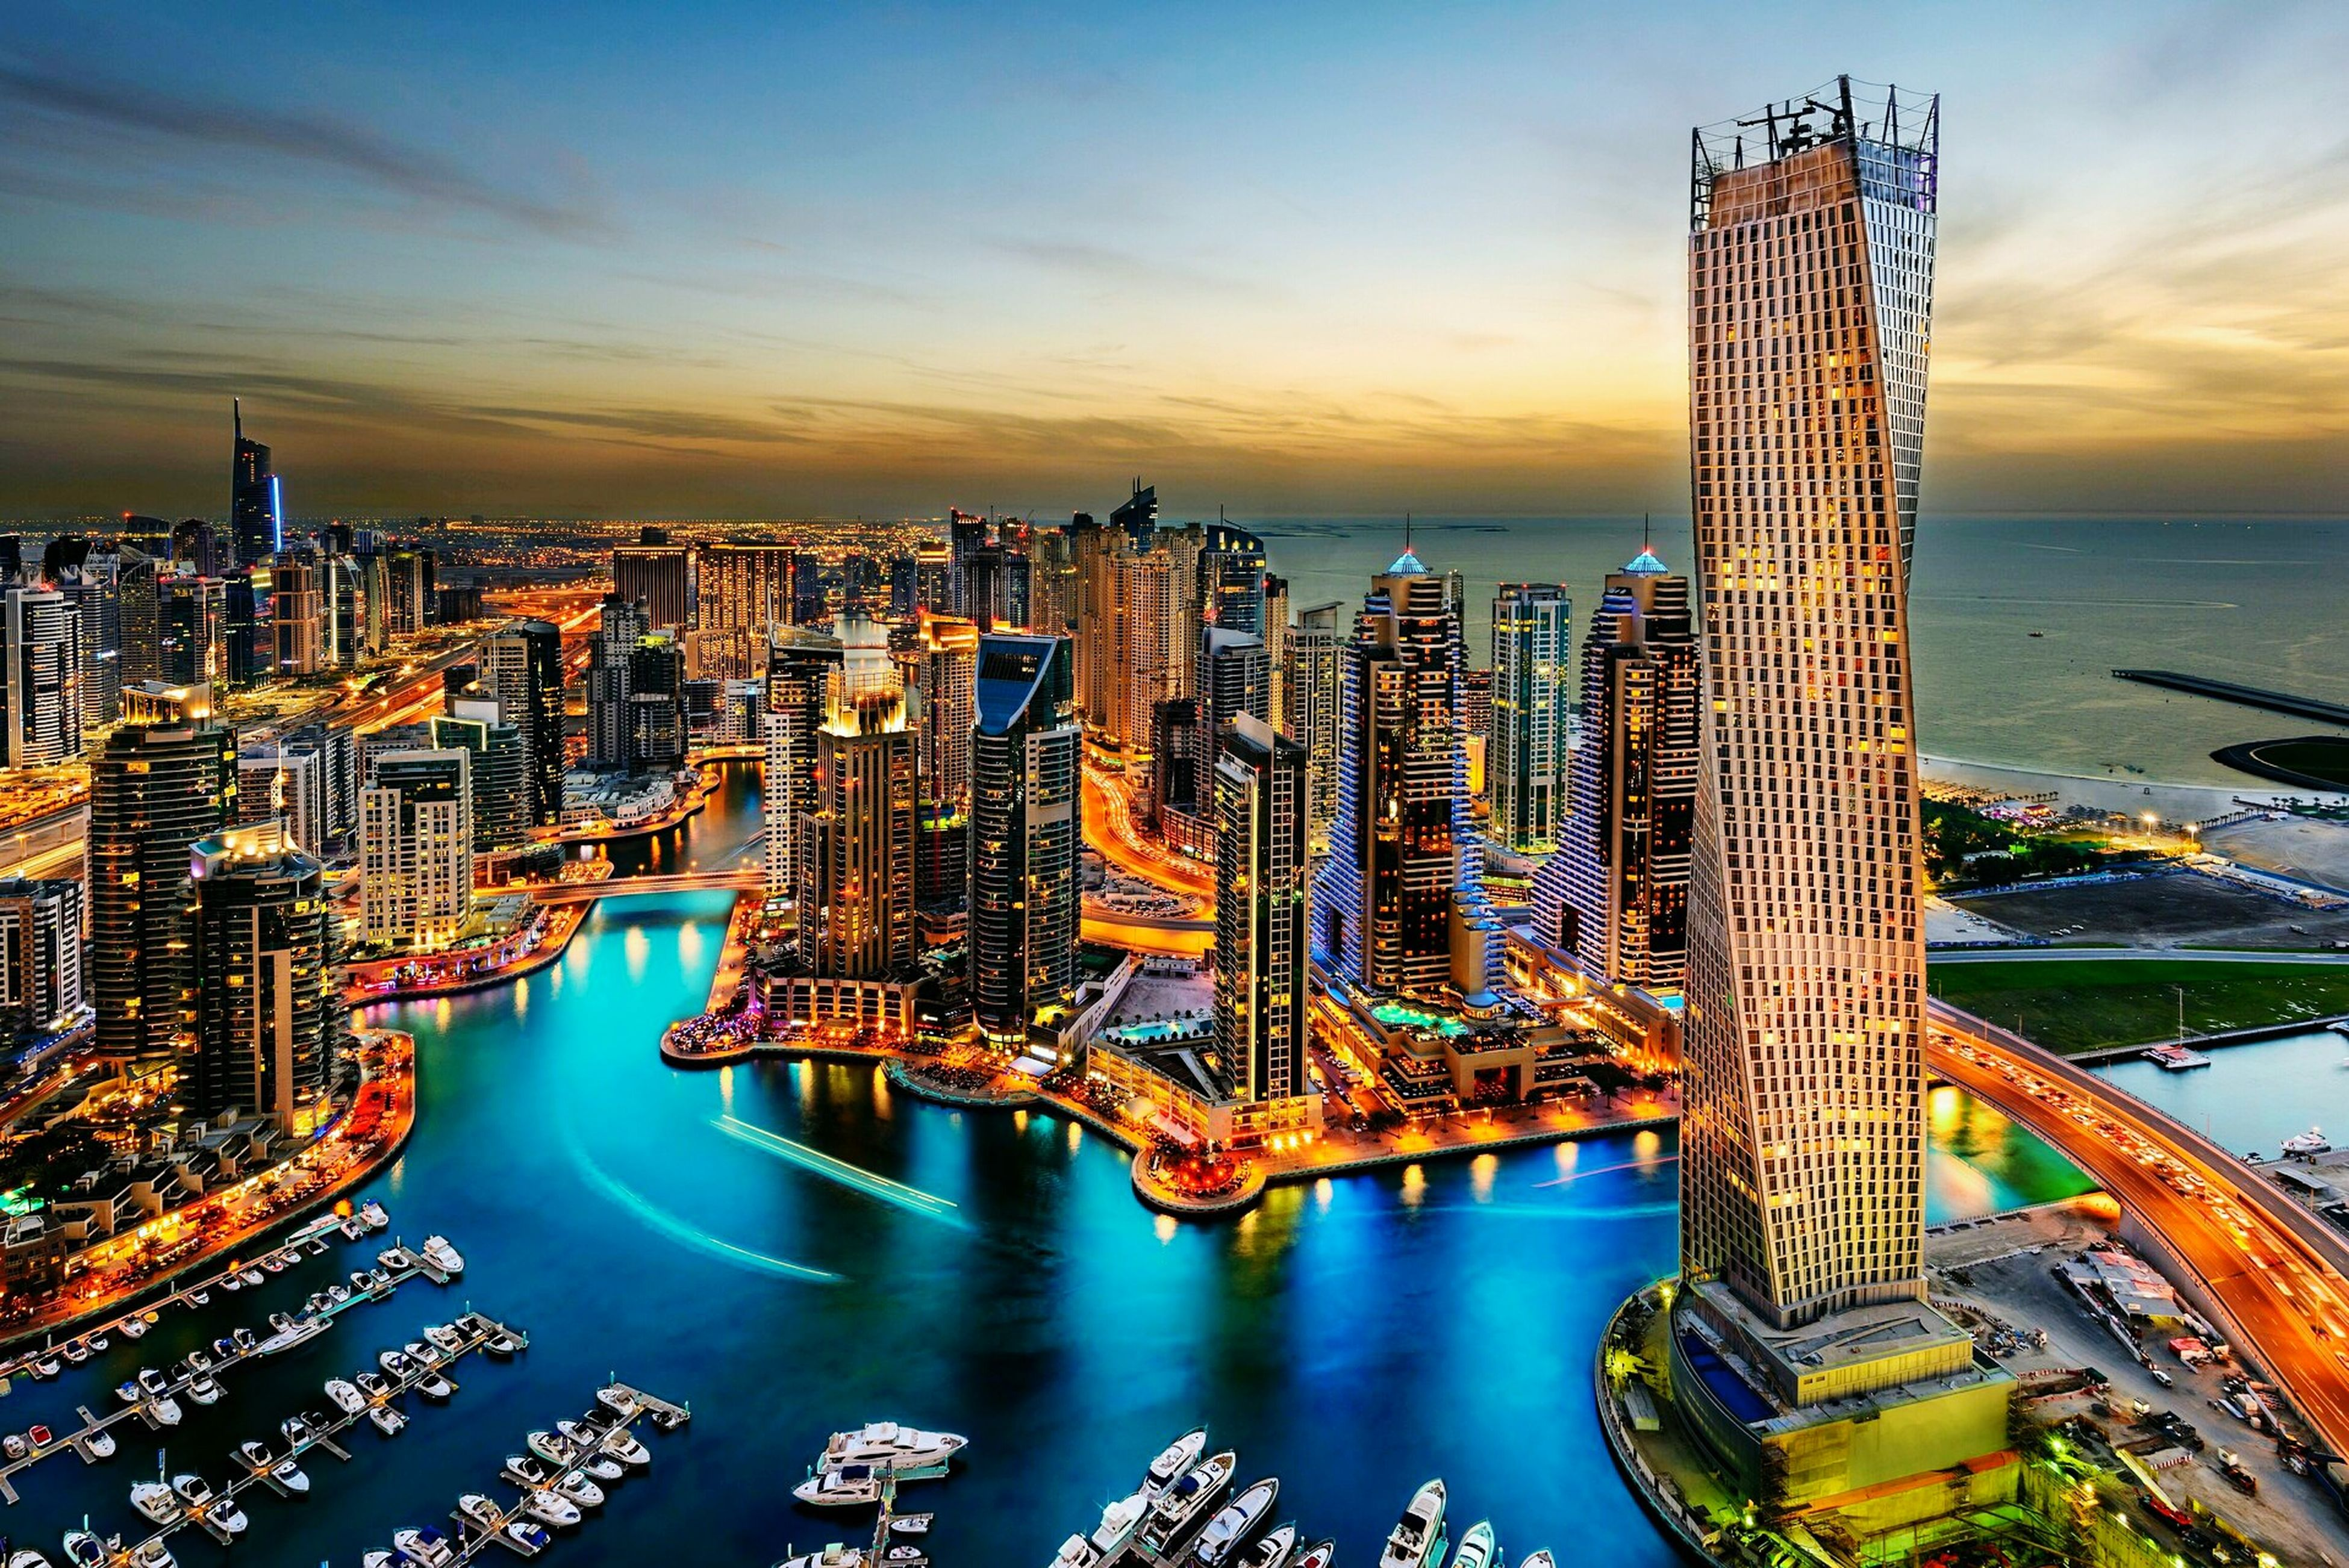 architecture, building exterior, skyscraper, water, built structure, sky, high angle view, travel destinations, waterfront, no people, cityscape, outdoors, city, illuminated, sunset, night, nature, modern, nautical vessel, urban skyline